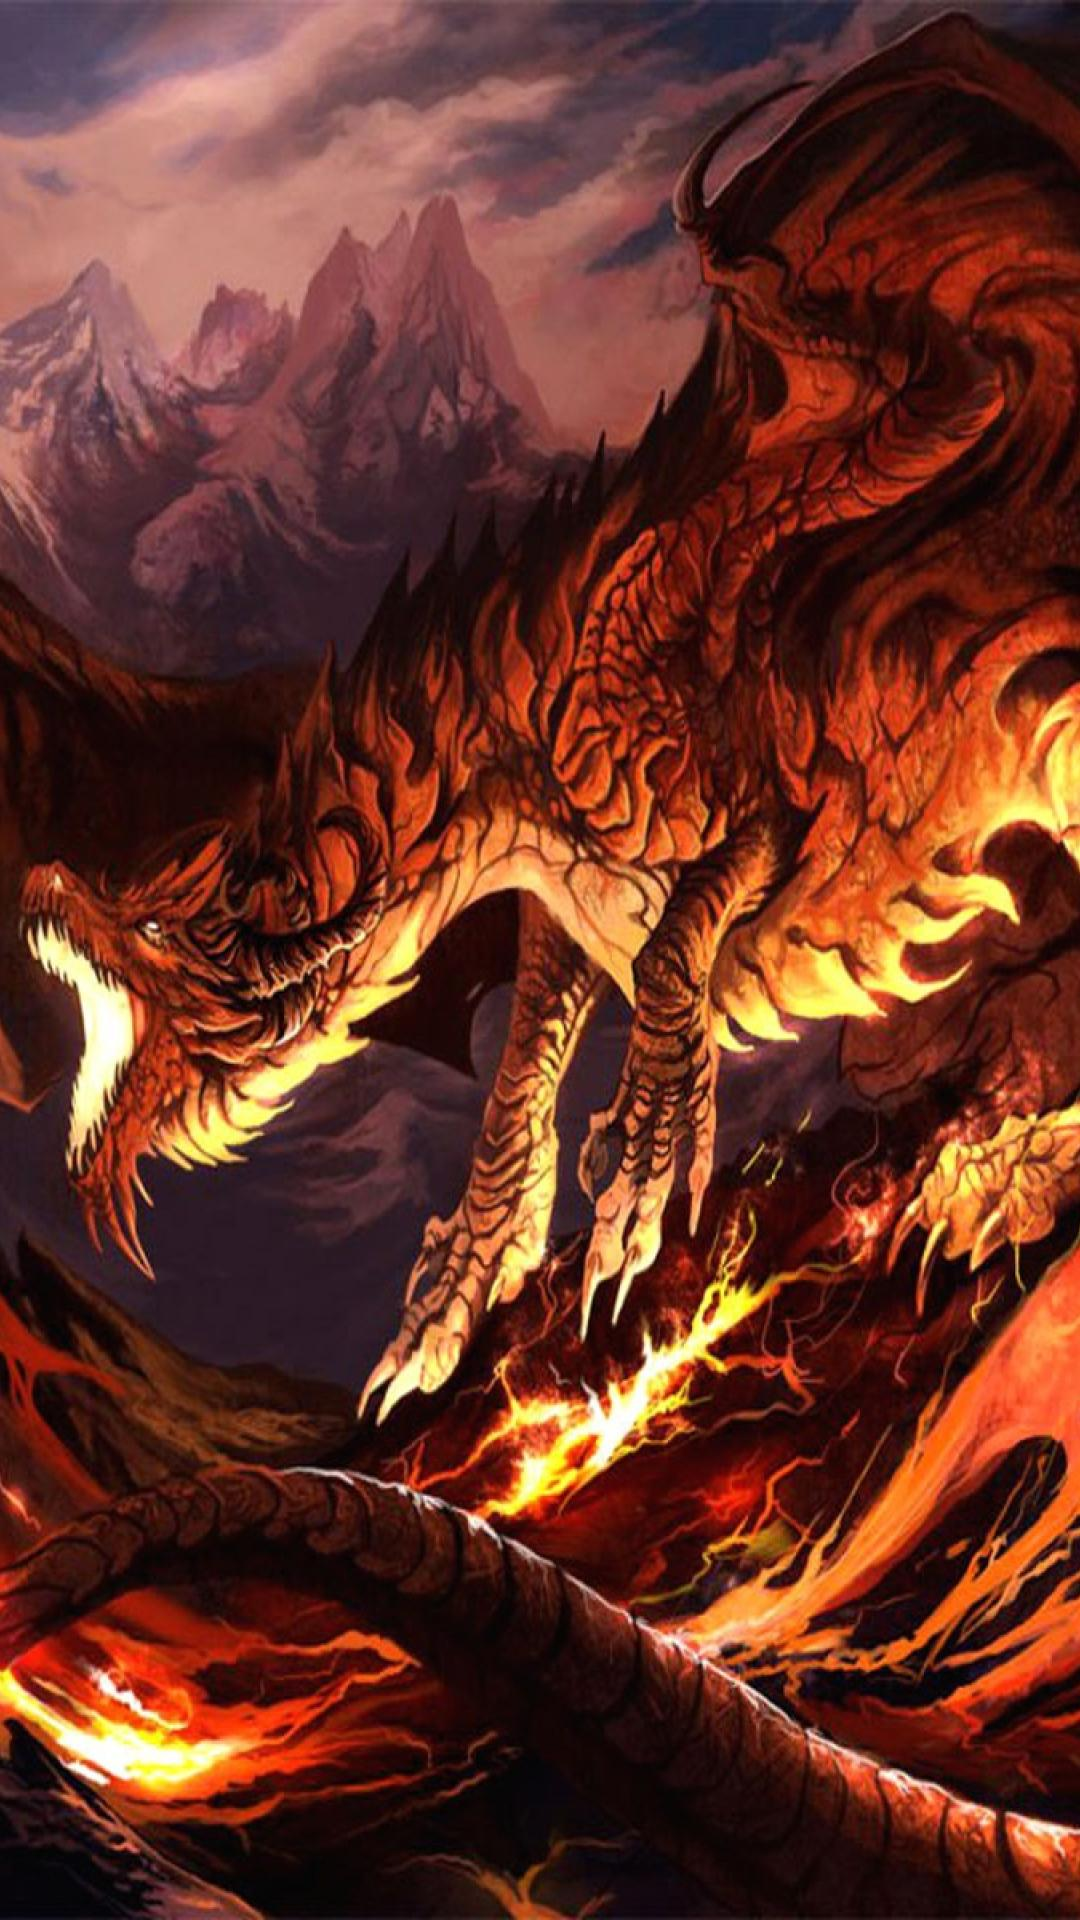 Fantasy wallpapers epic dragon fantasy iphone 1080x1920 - I phone fantasy wallpapers ...